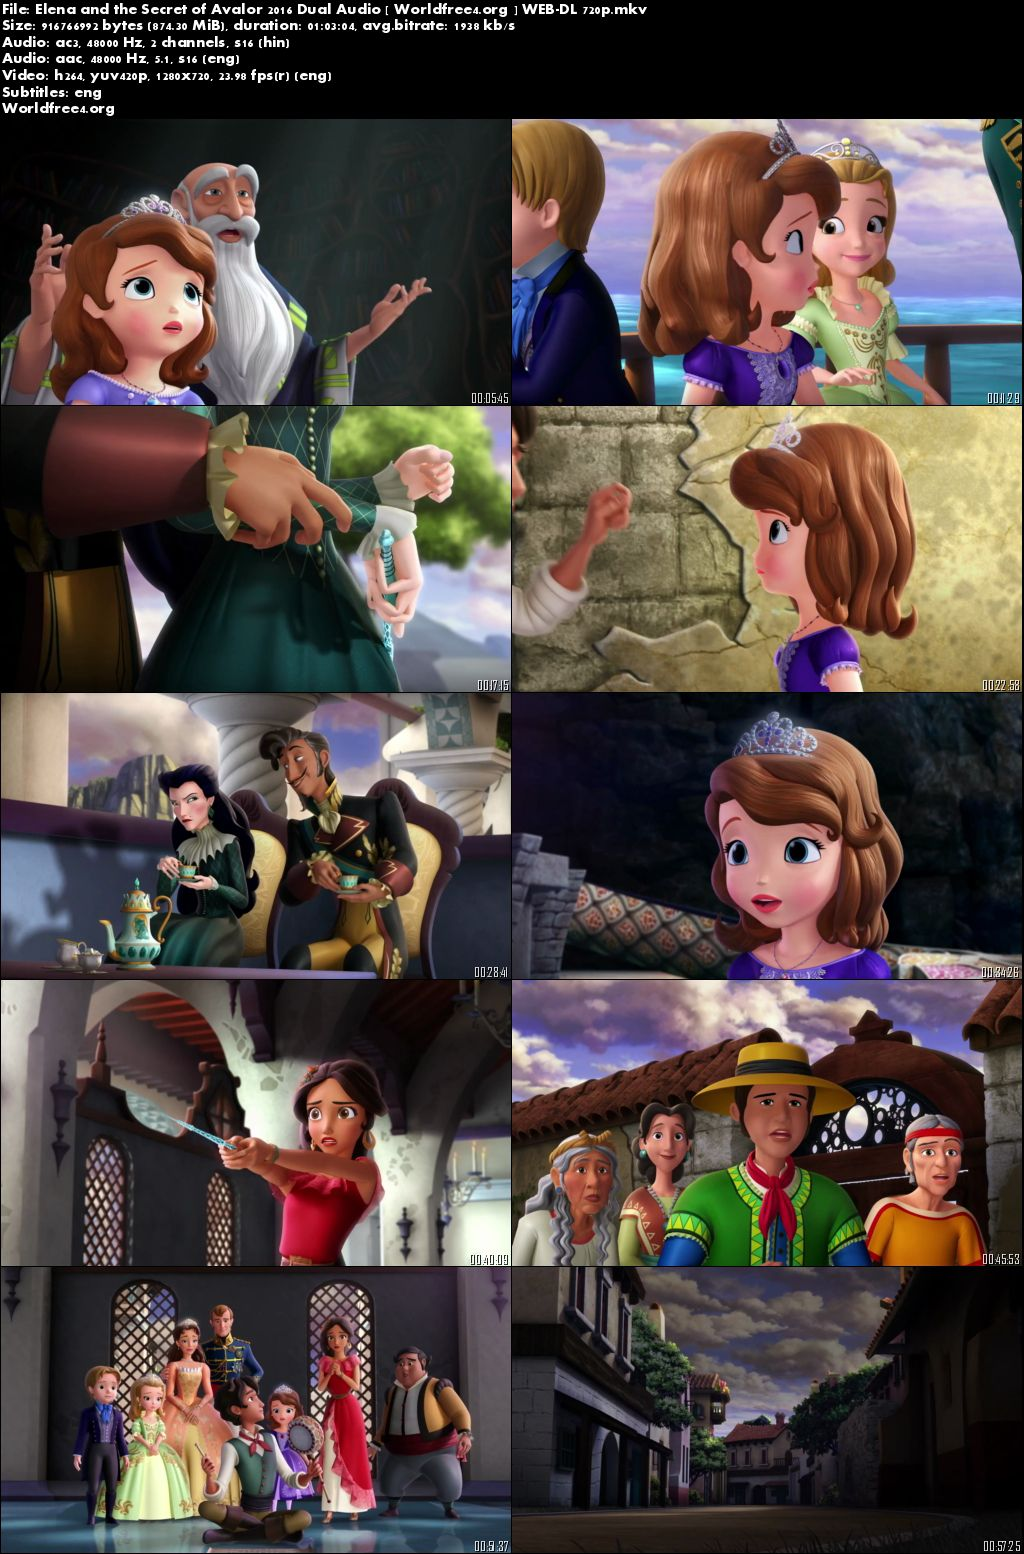 Elena and the Secret of Avalor 2016 WEB-DL Hindi 200MB Dual Audio 480p Download